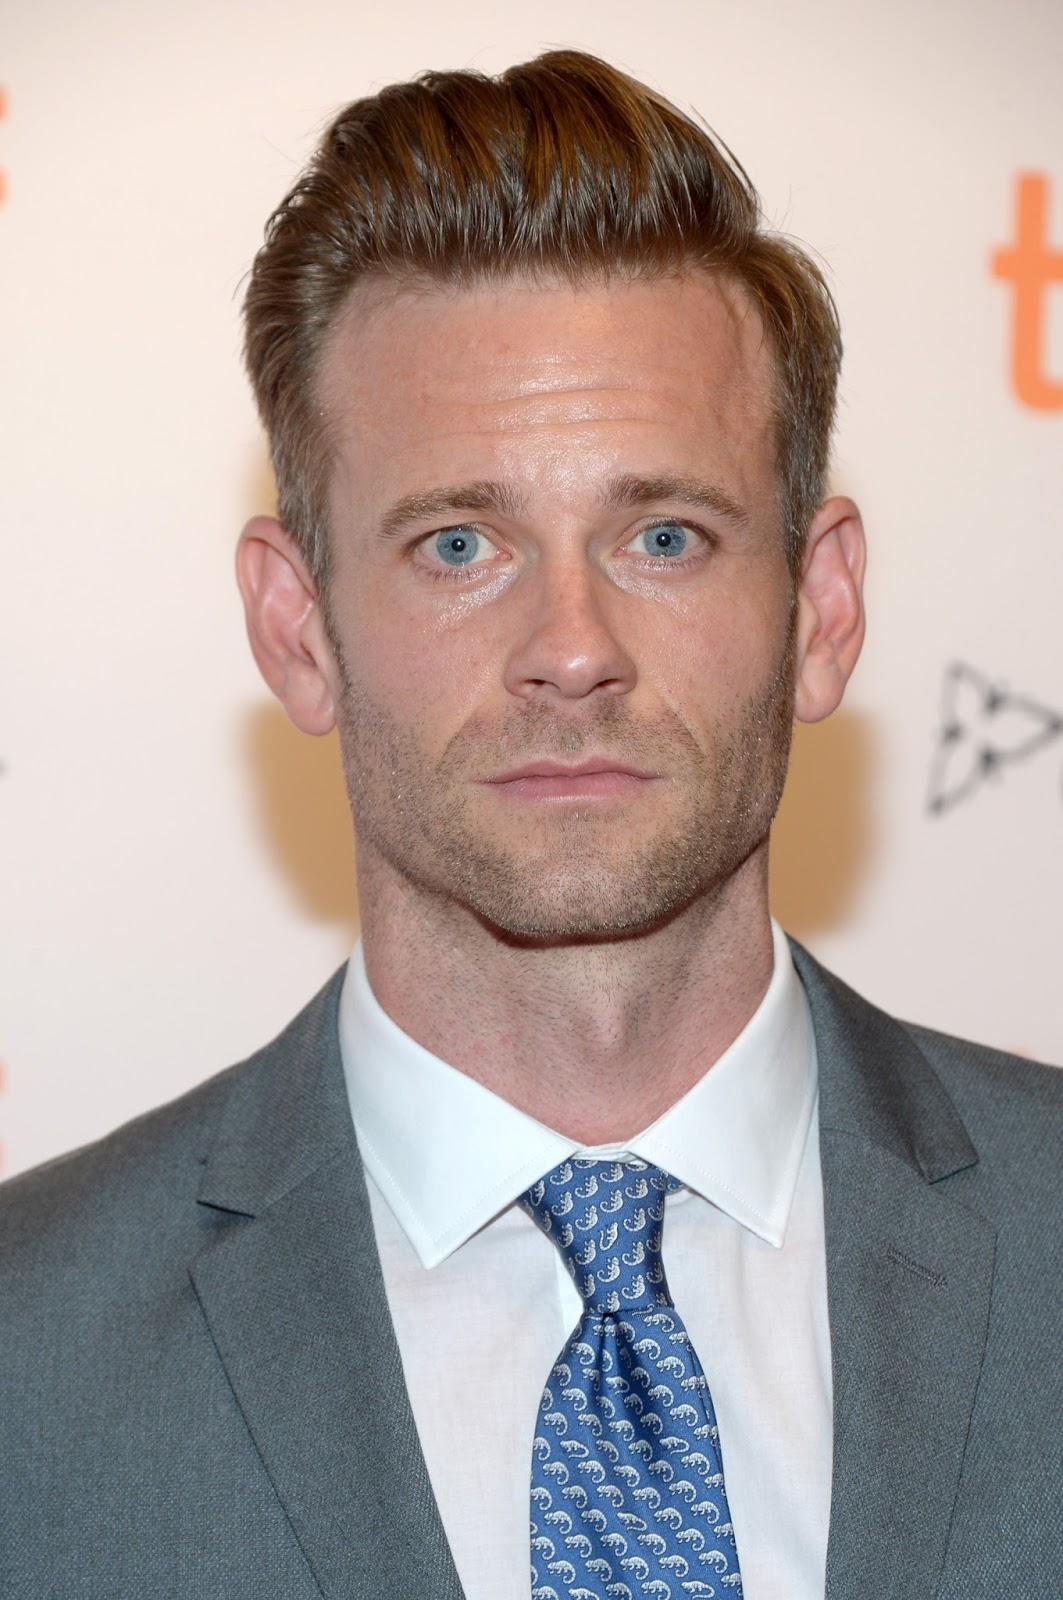 fifty shades updates hq photos eric johnson attends tiff